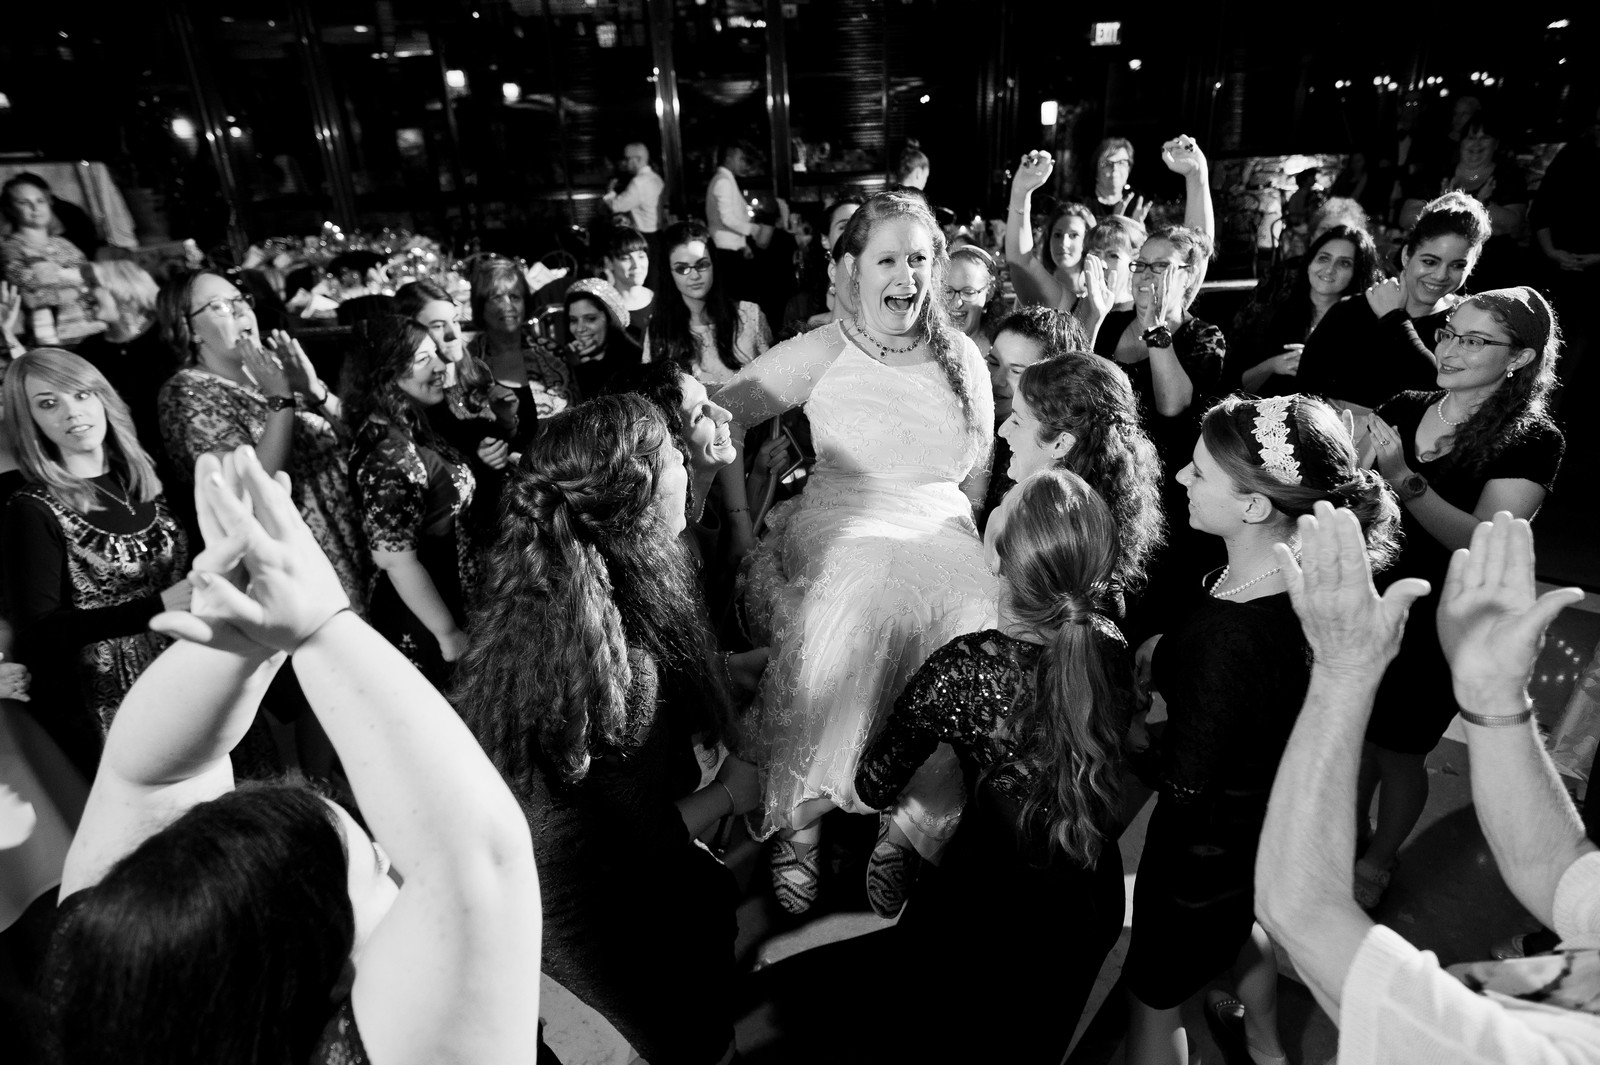 Sam and Yishai's Modern Orthodox Jewish Wedding at Crest Hollow Country Club, Woodbury NY, Photos by Chaim Schvarcz, Bride, Dancing